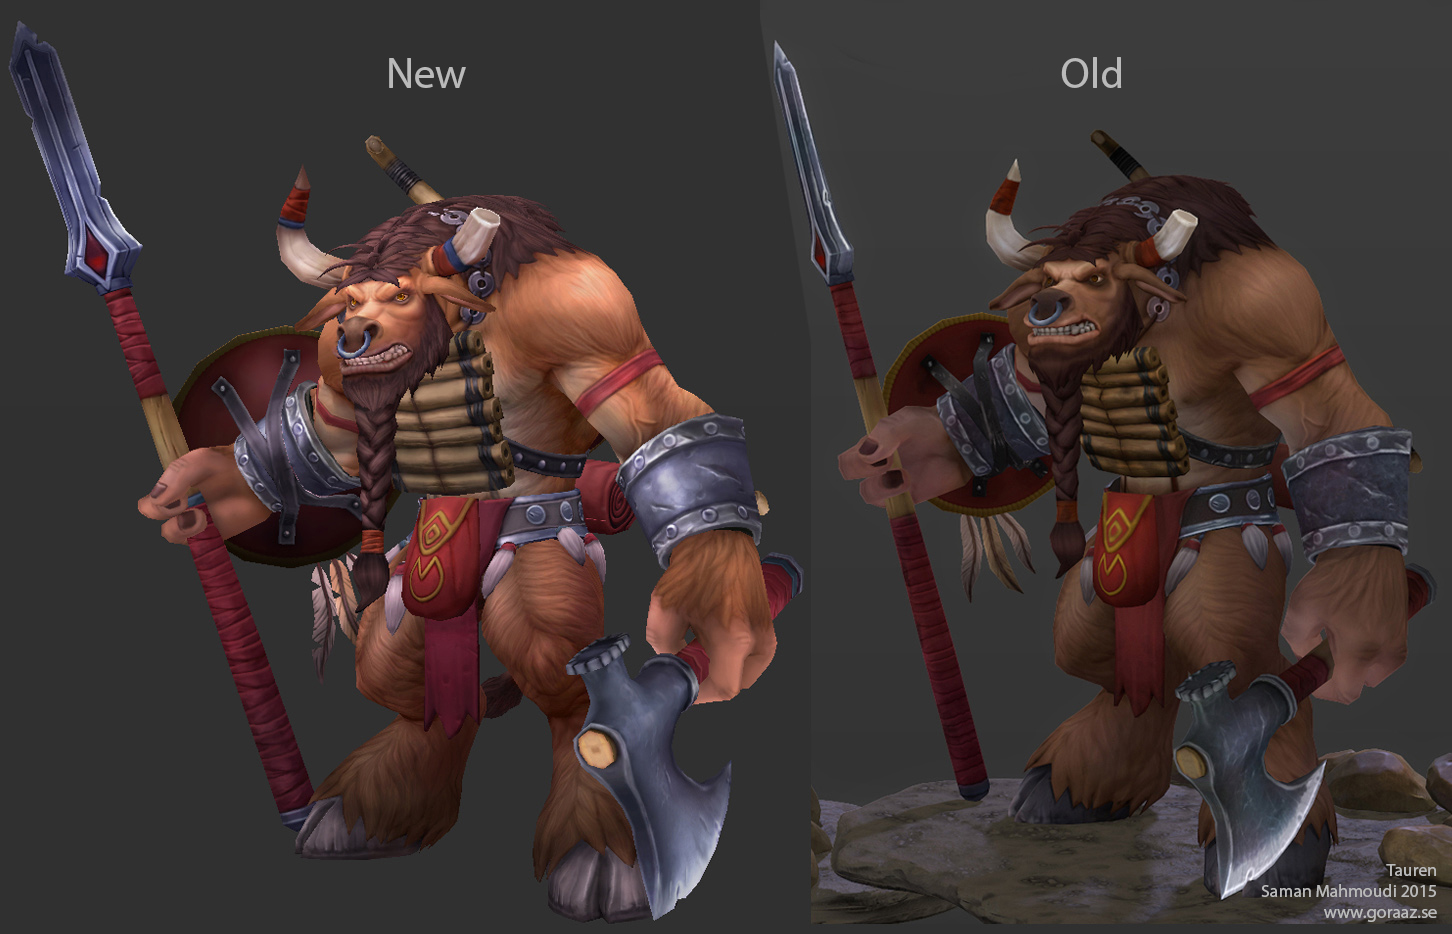 Speedo tauren nude photo